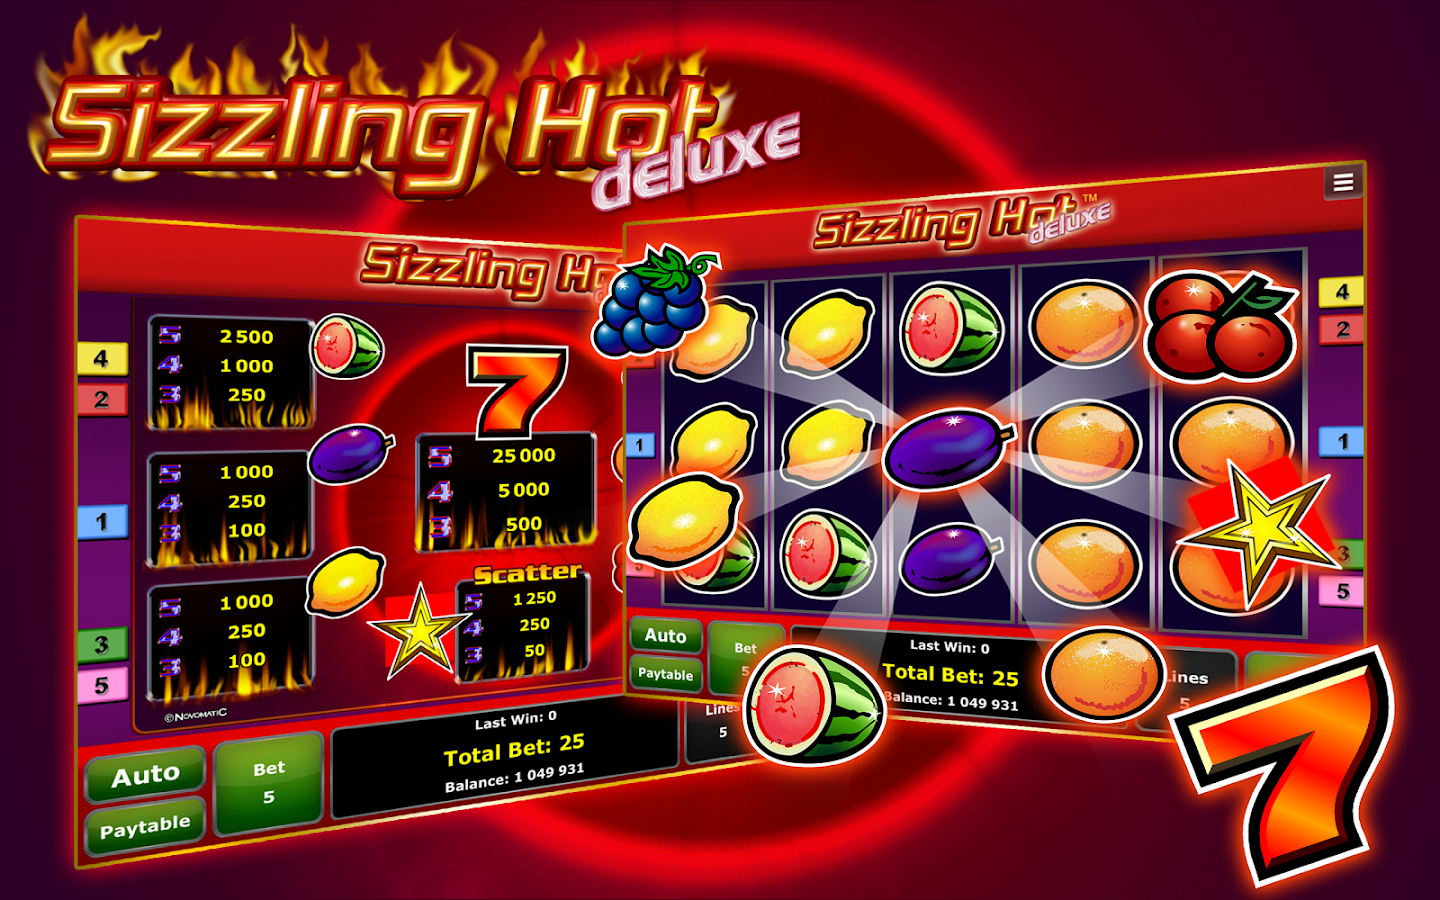 online casino best sizzling hot delux